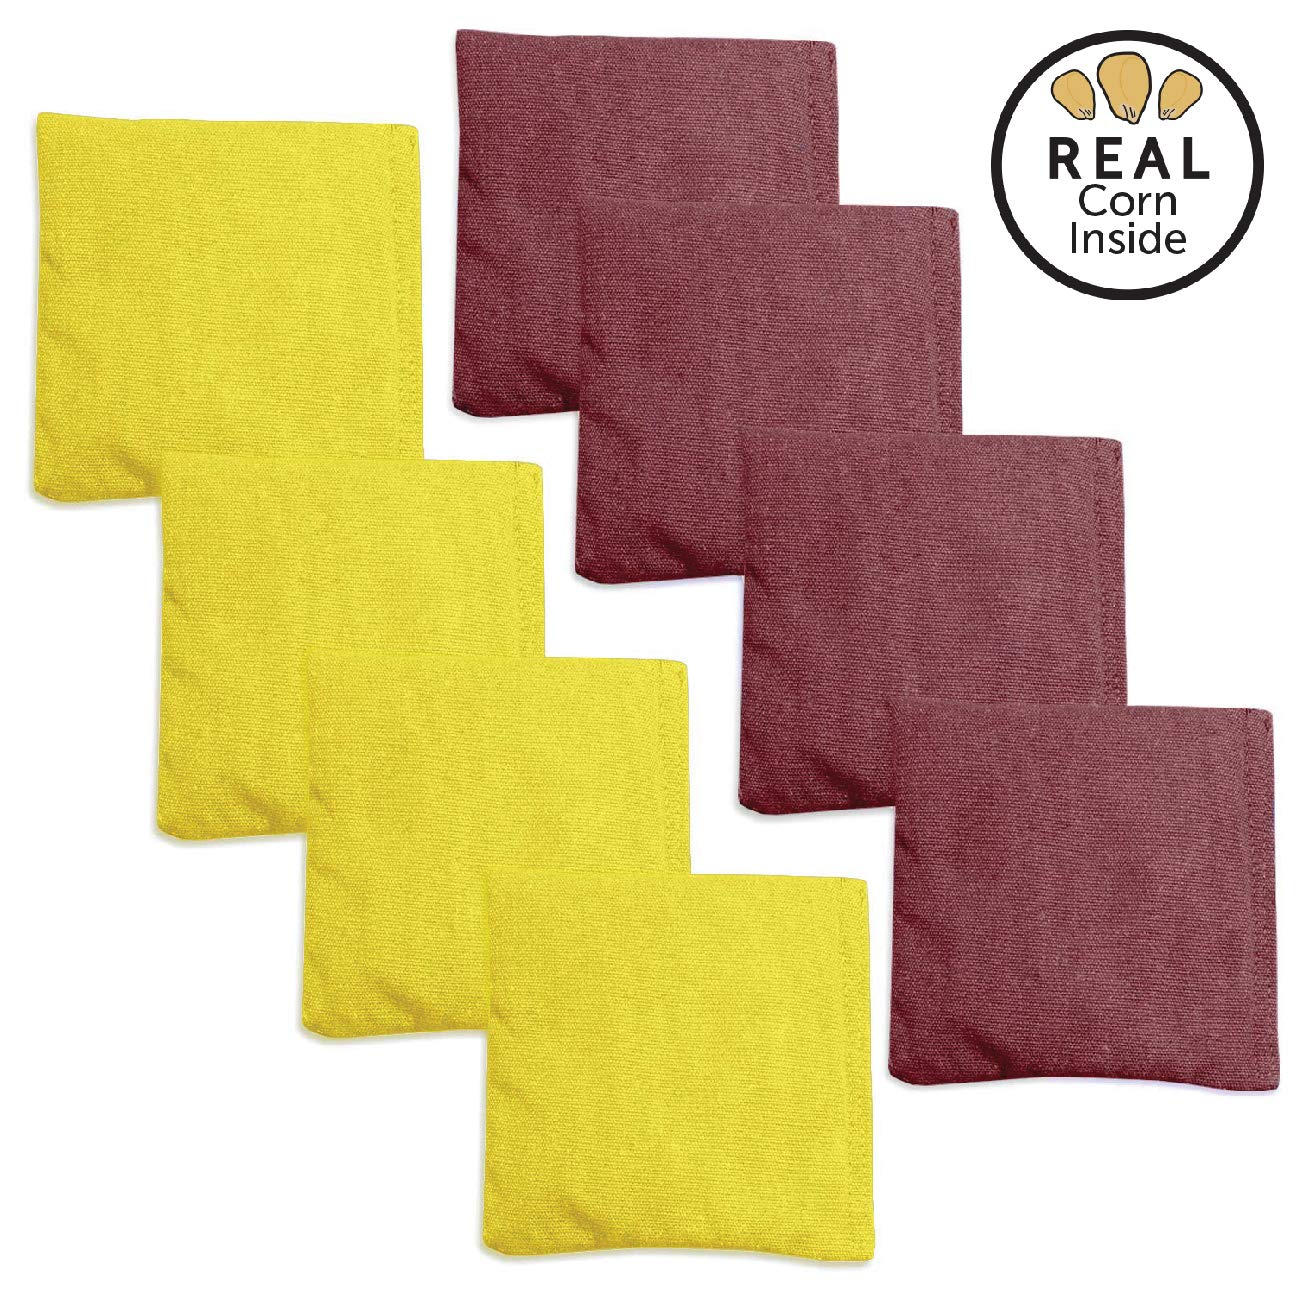 Corn Filled Cornhole Bags - Set of 8 Bean Bags for Corn Hole Game - Regulation Size & Weight - Burgundy & Yellow